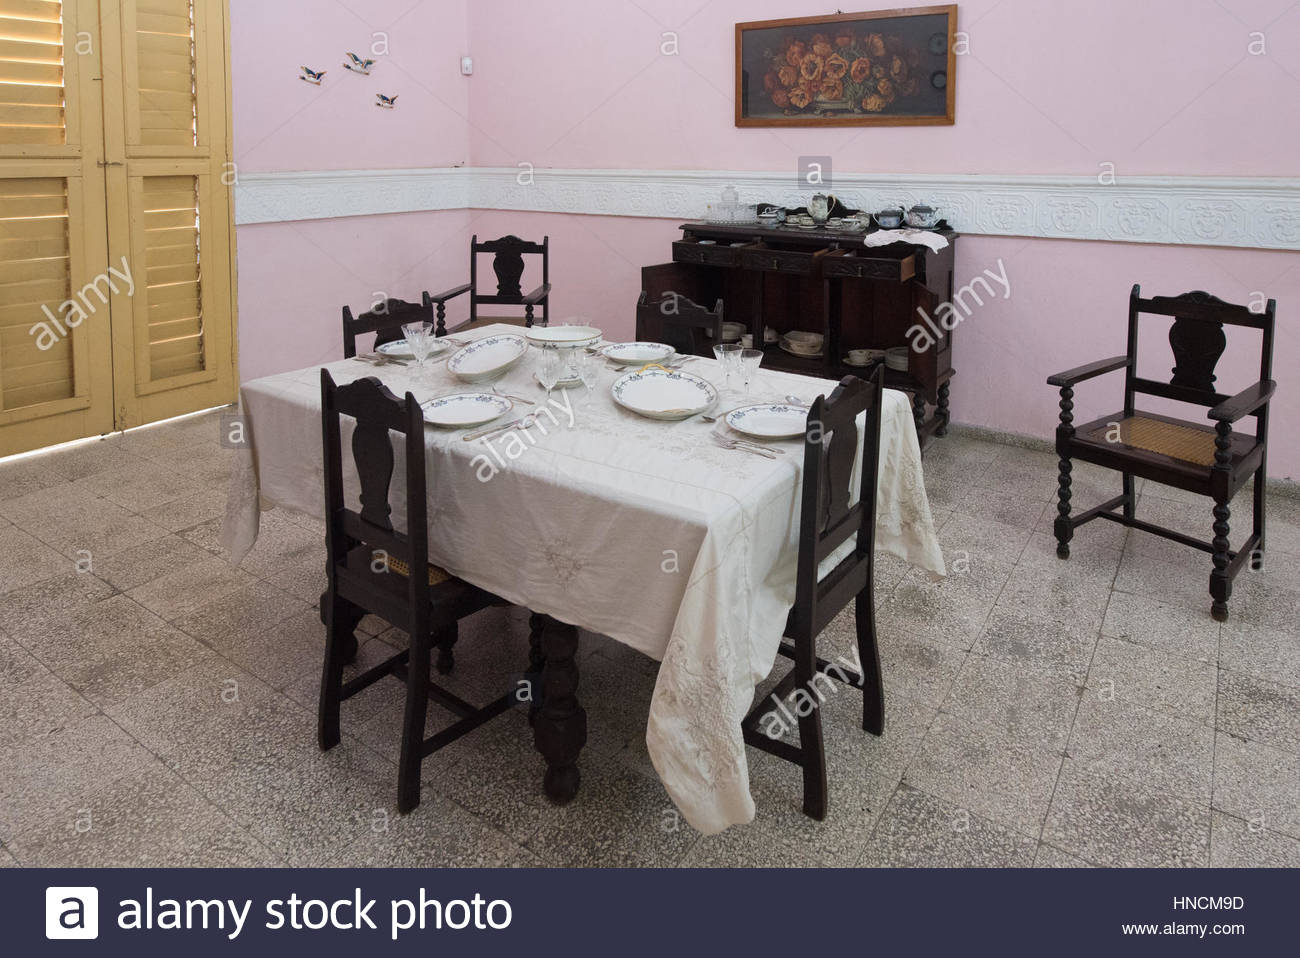 Cuban Colonial Dining Room Furniture, Table Set At The Style Of The Epoch.  Cuban Conservation Of Old Items And Its History Is A Tourist Attraction In